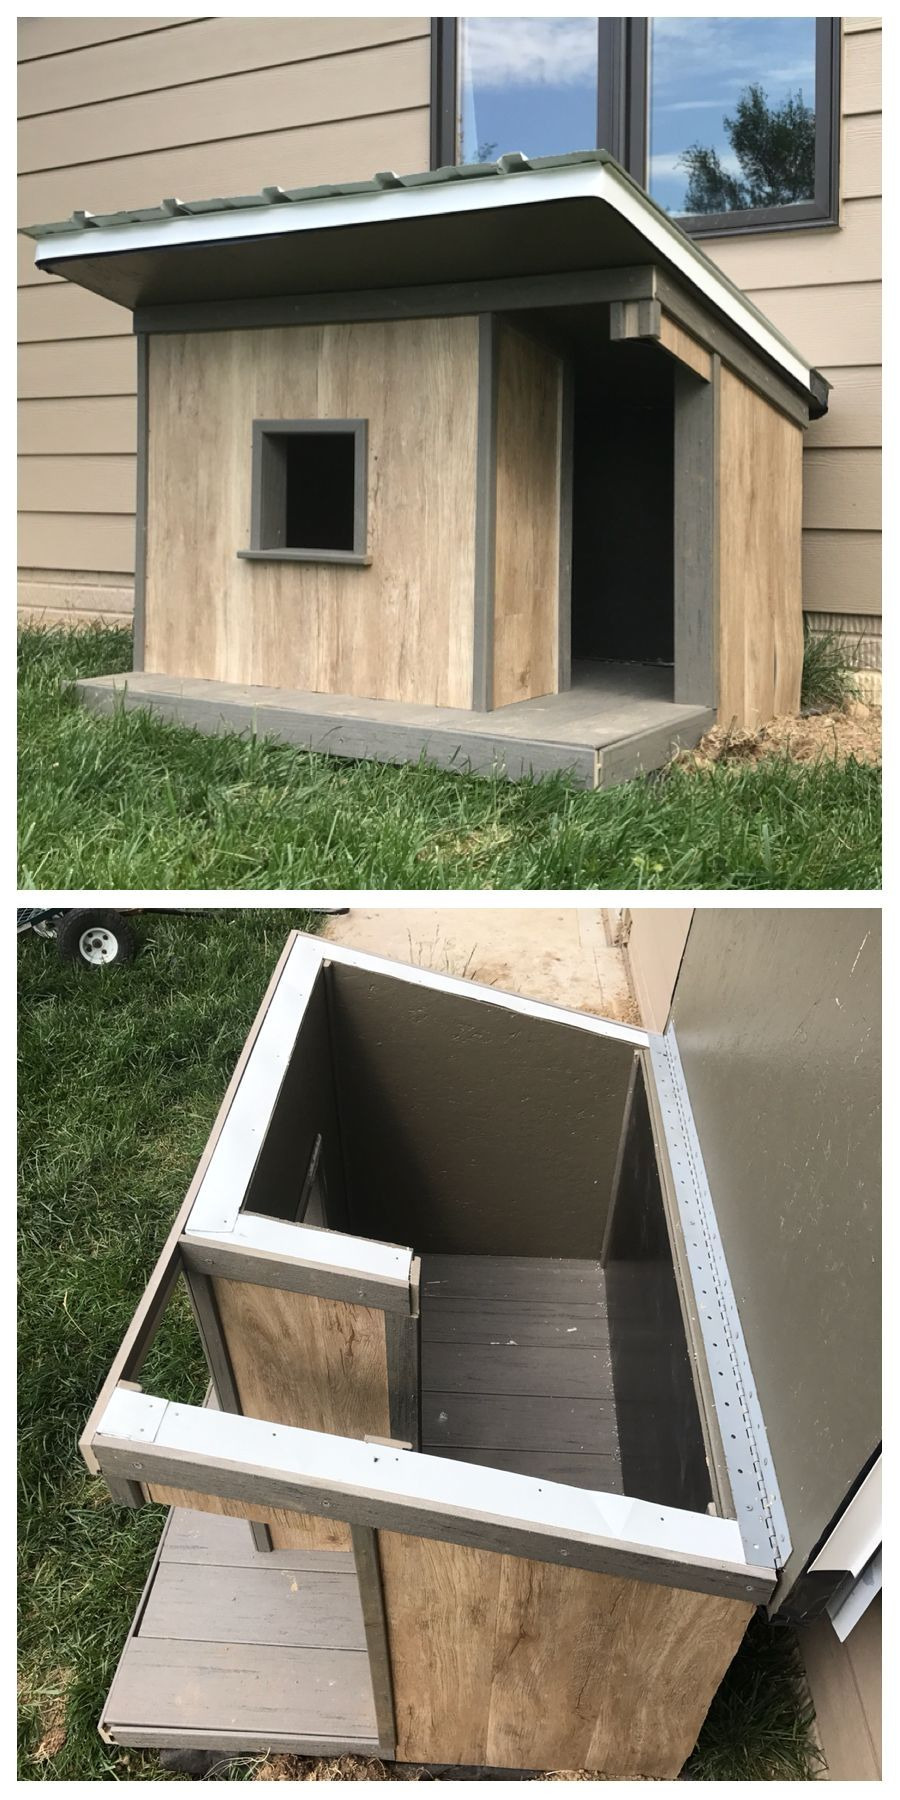 Building Plans for Dog House Best Of Cold Weather Dog House Plans